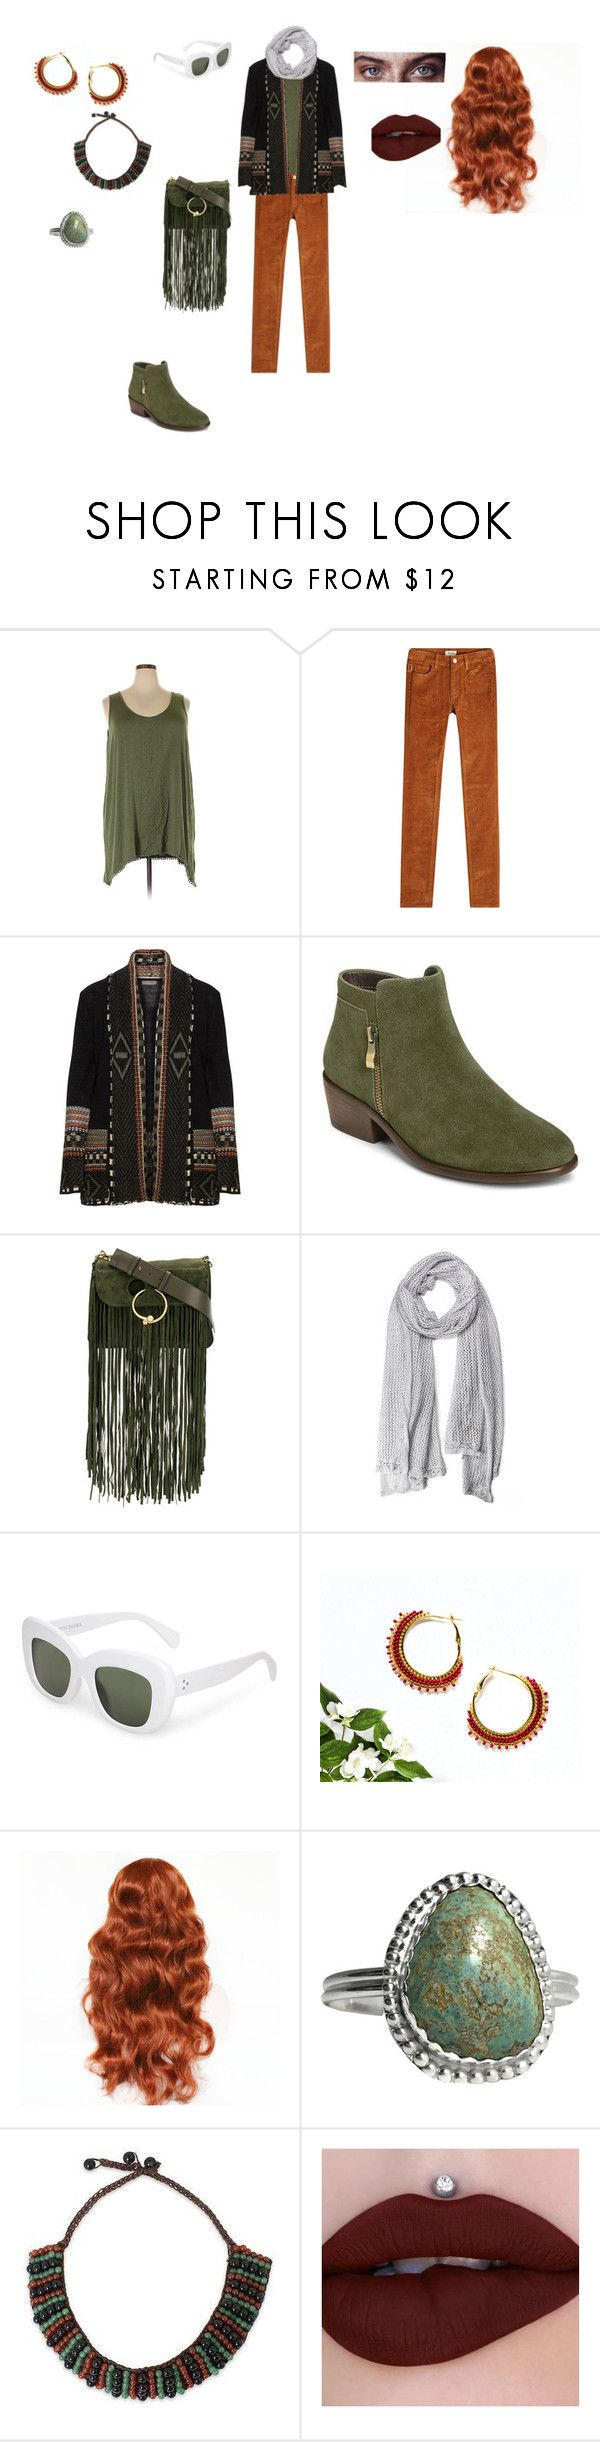 """Casual Outfit"" by helena94-1 on Polyvore featuring Nanette Lepore, Zadig & Voltaire, Open End, Aerosoles, J.W. Anderson, Steve Madden, NOVICA, polyvorefashion and plus size clothing"